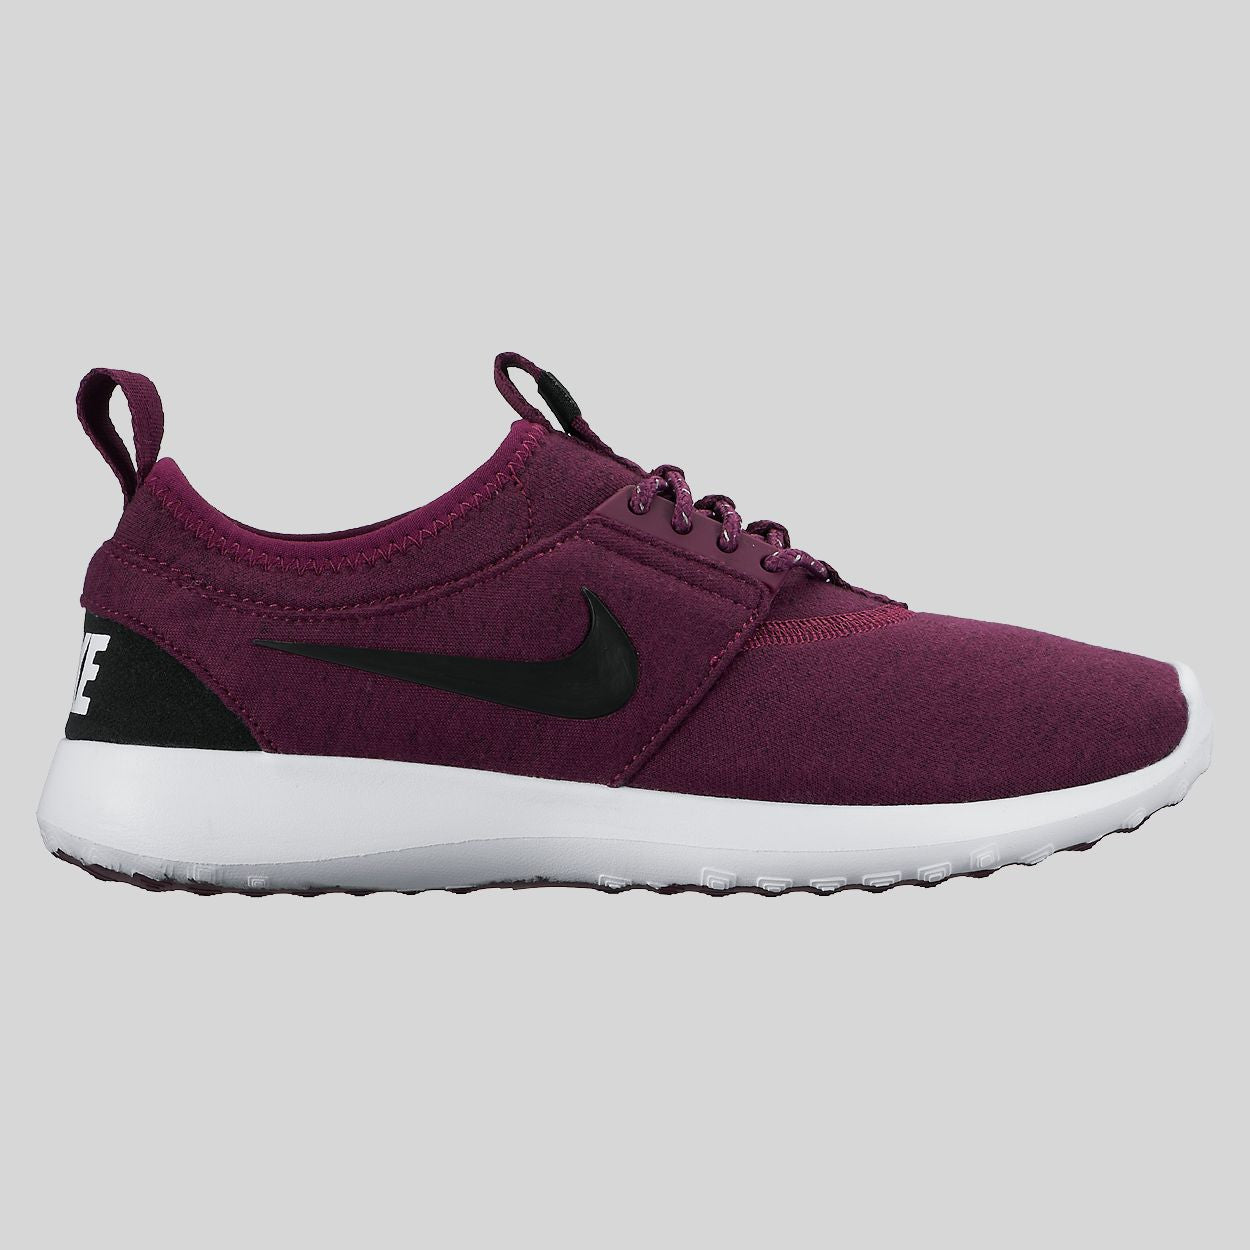 Nike Wmns Nike Juvenate TP Tech Pack Mulberry Black White (749551-500)